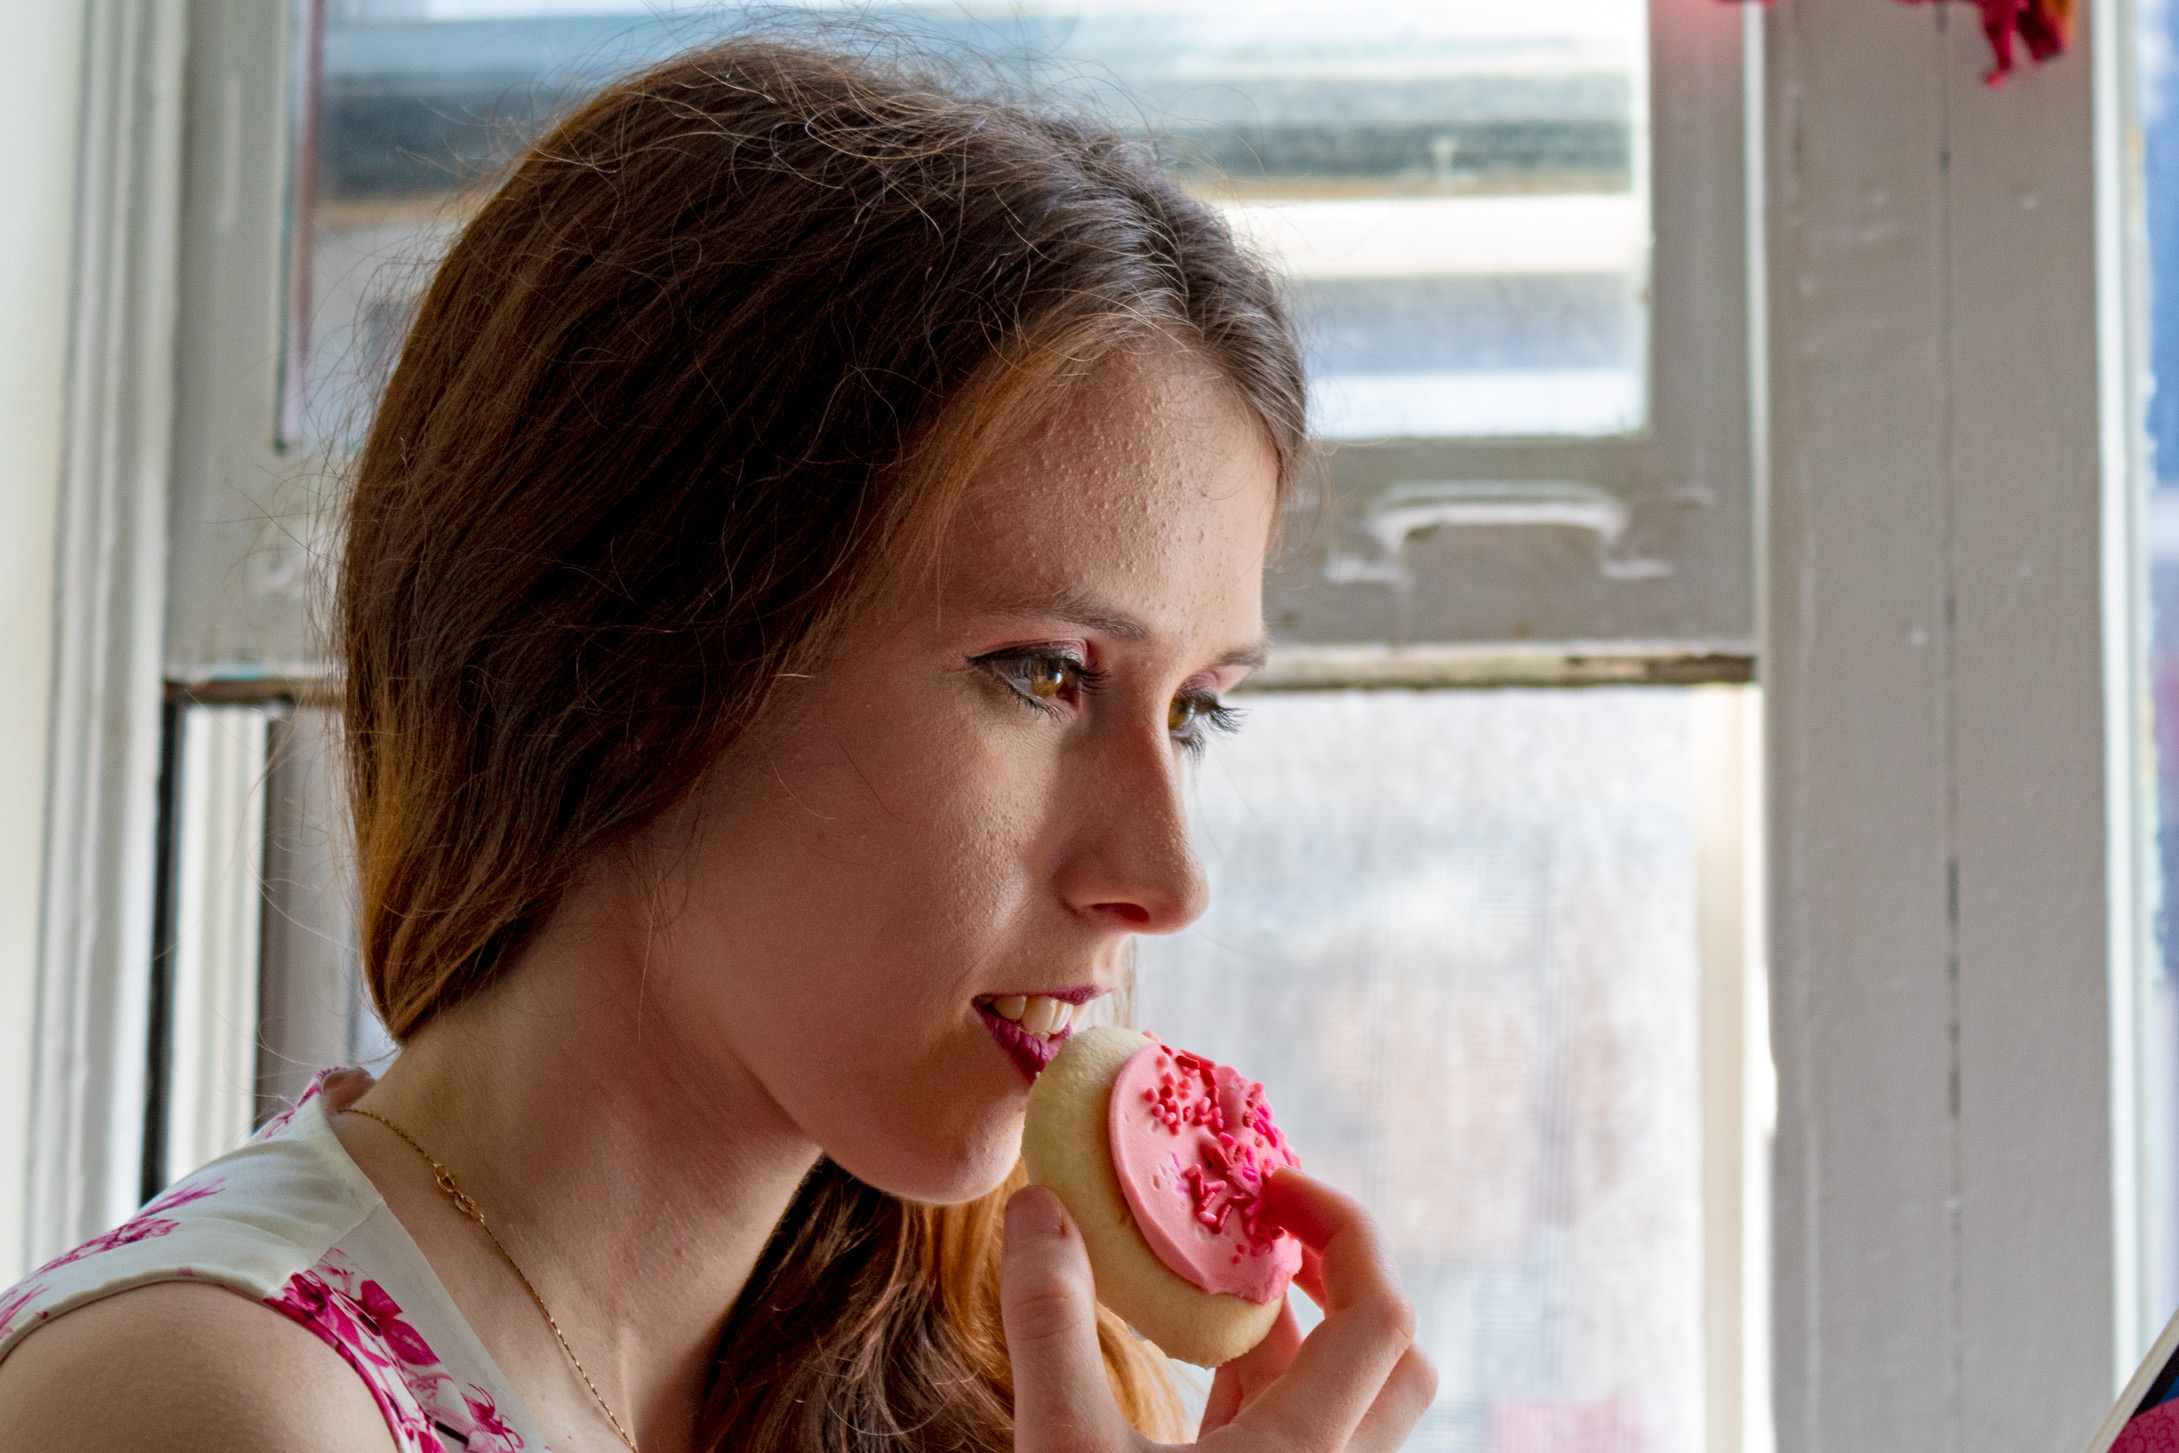 Woman holding a sugar cookie with pink frosting near her mouth